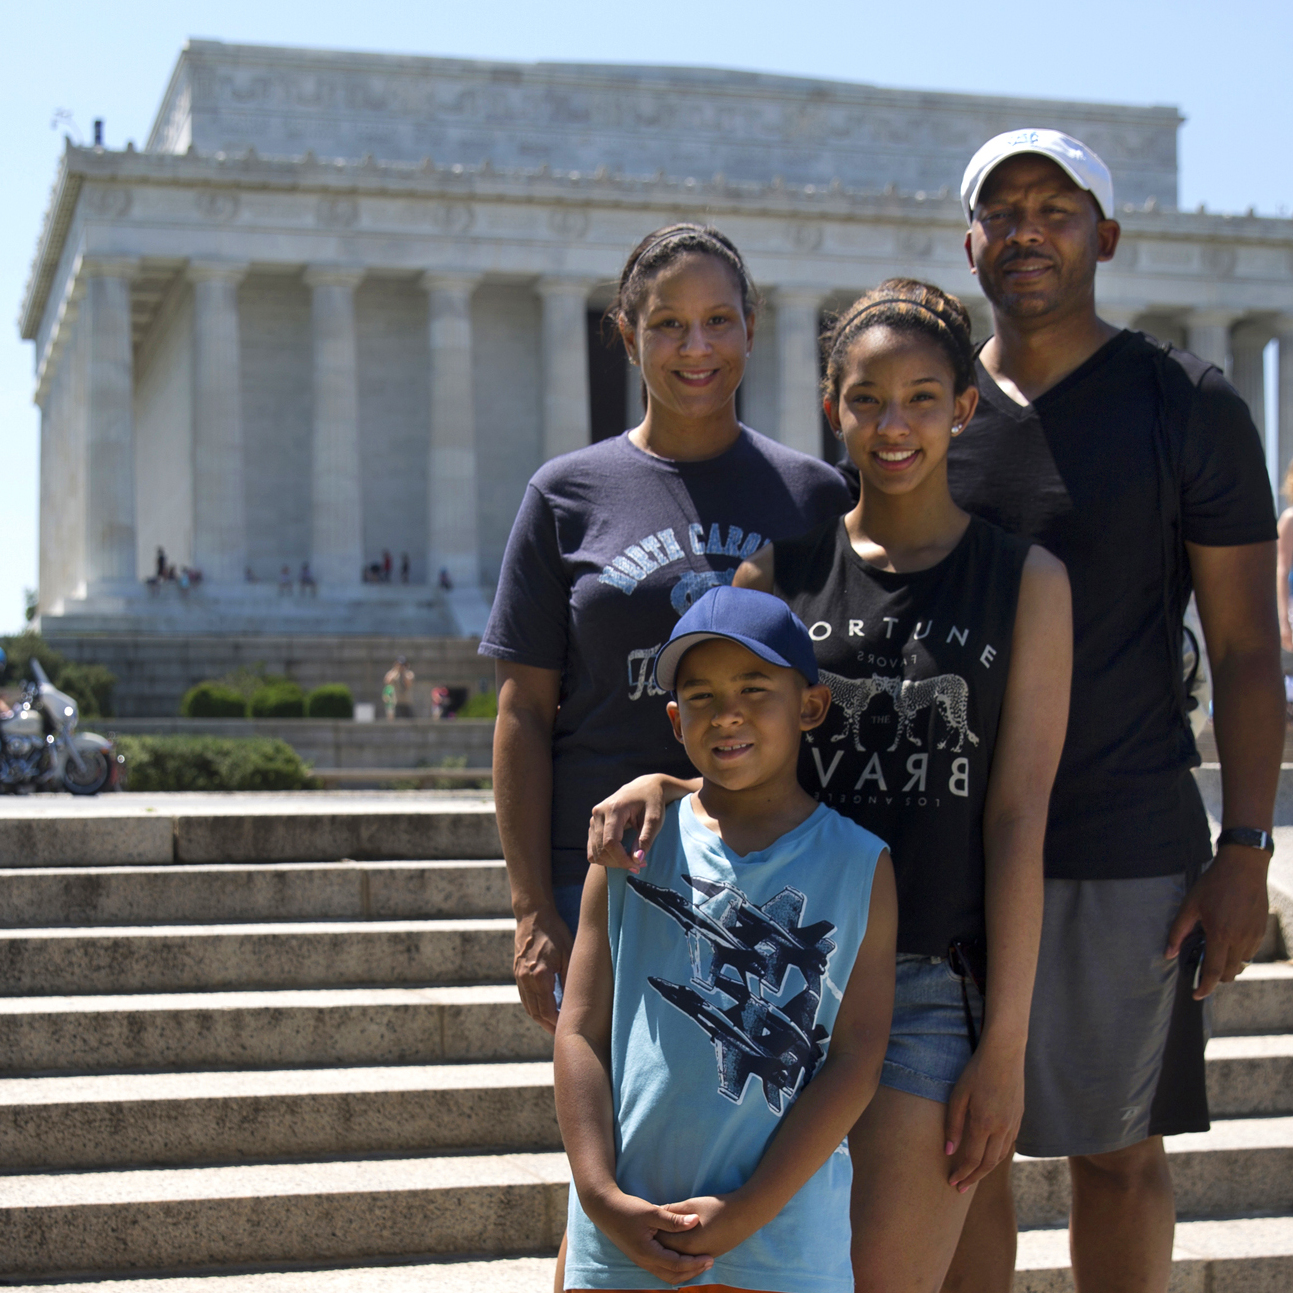 Kara, Michael, Mikaila and Cameron Milton of Greensboro, N.C., pose for a portrait near the Lincoln Memorial on June 21, after reading the Declaration of Independence for Morning Edition.